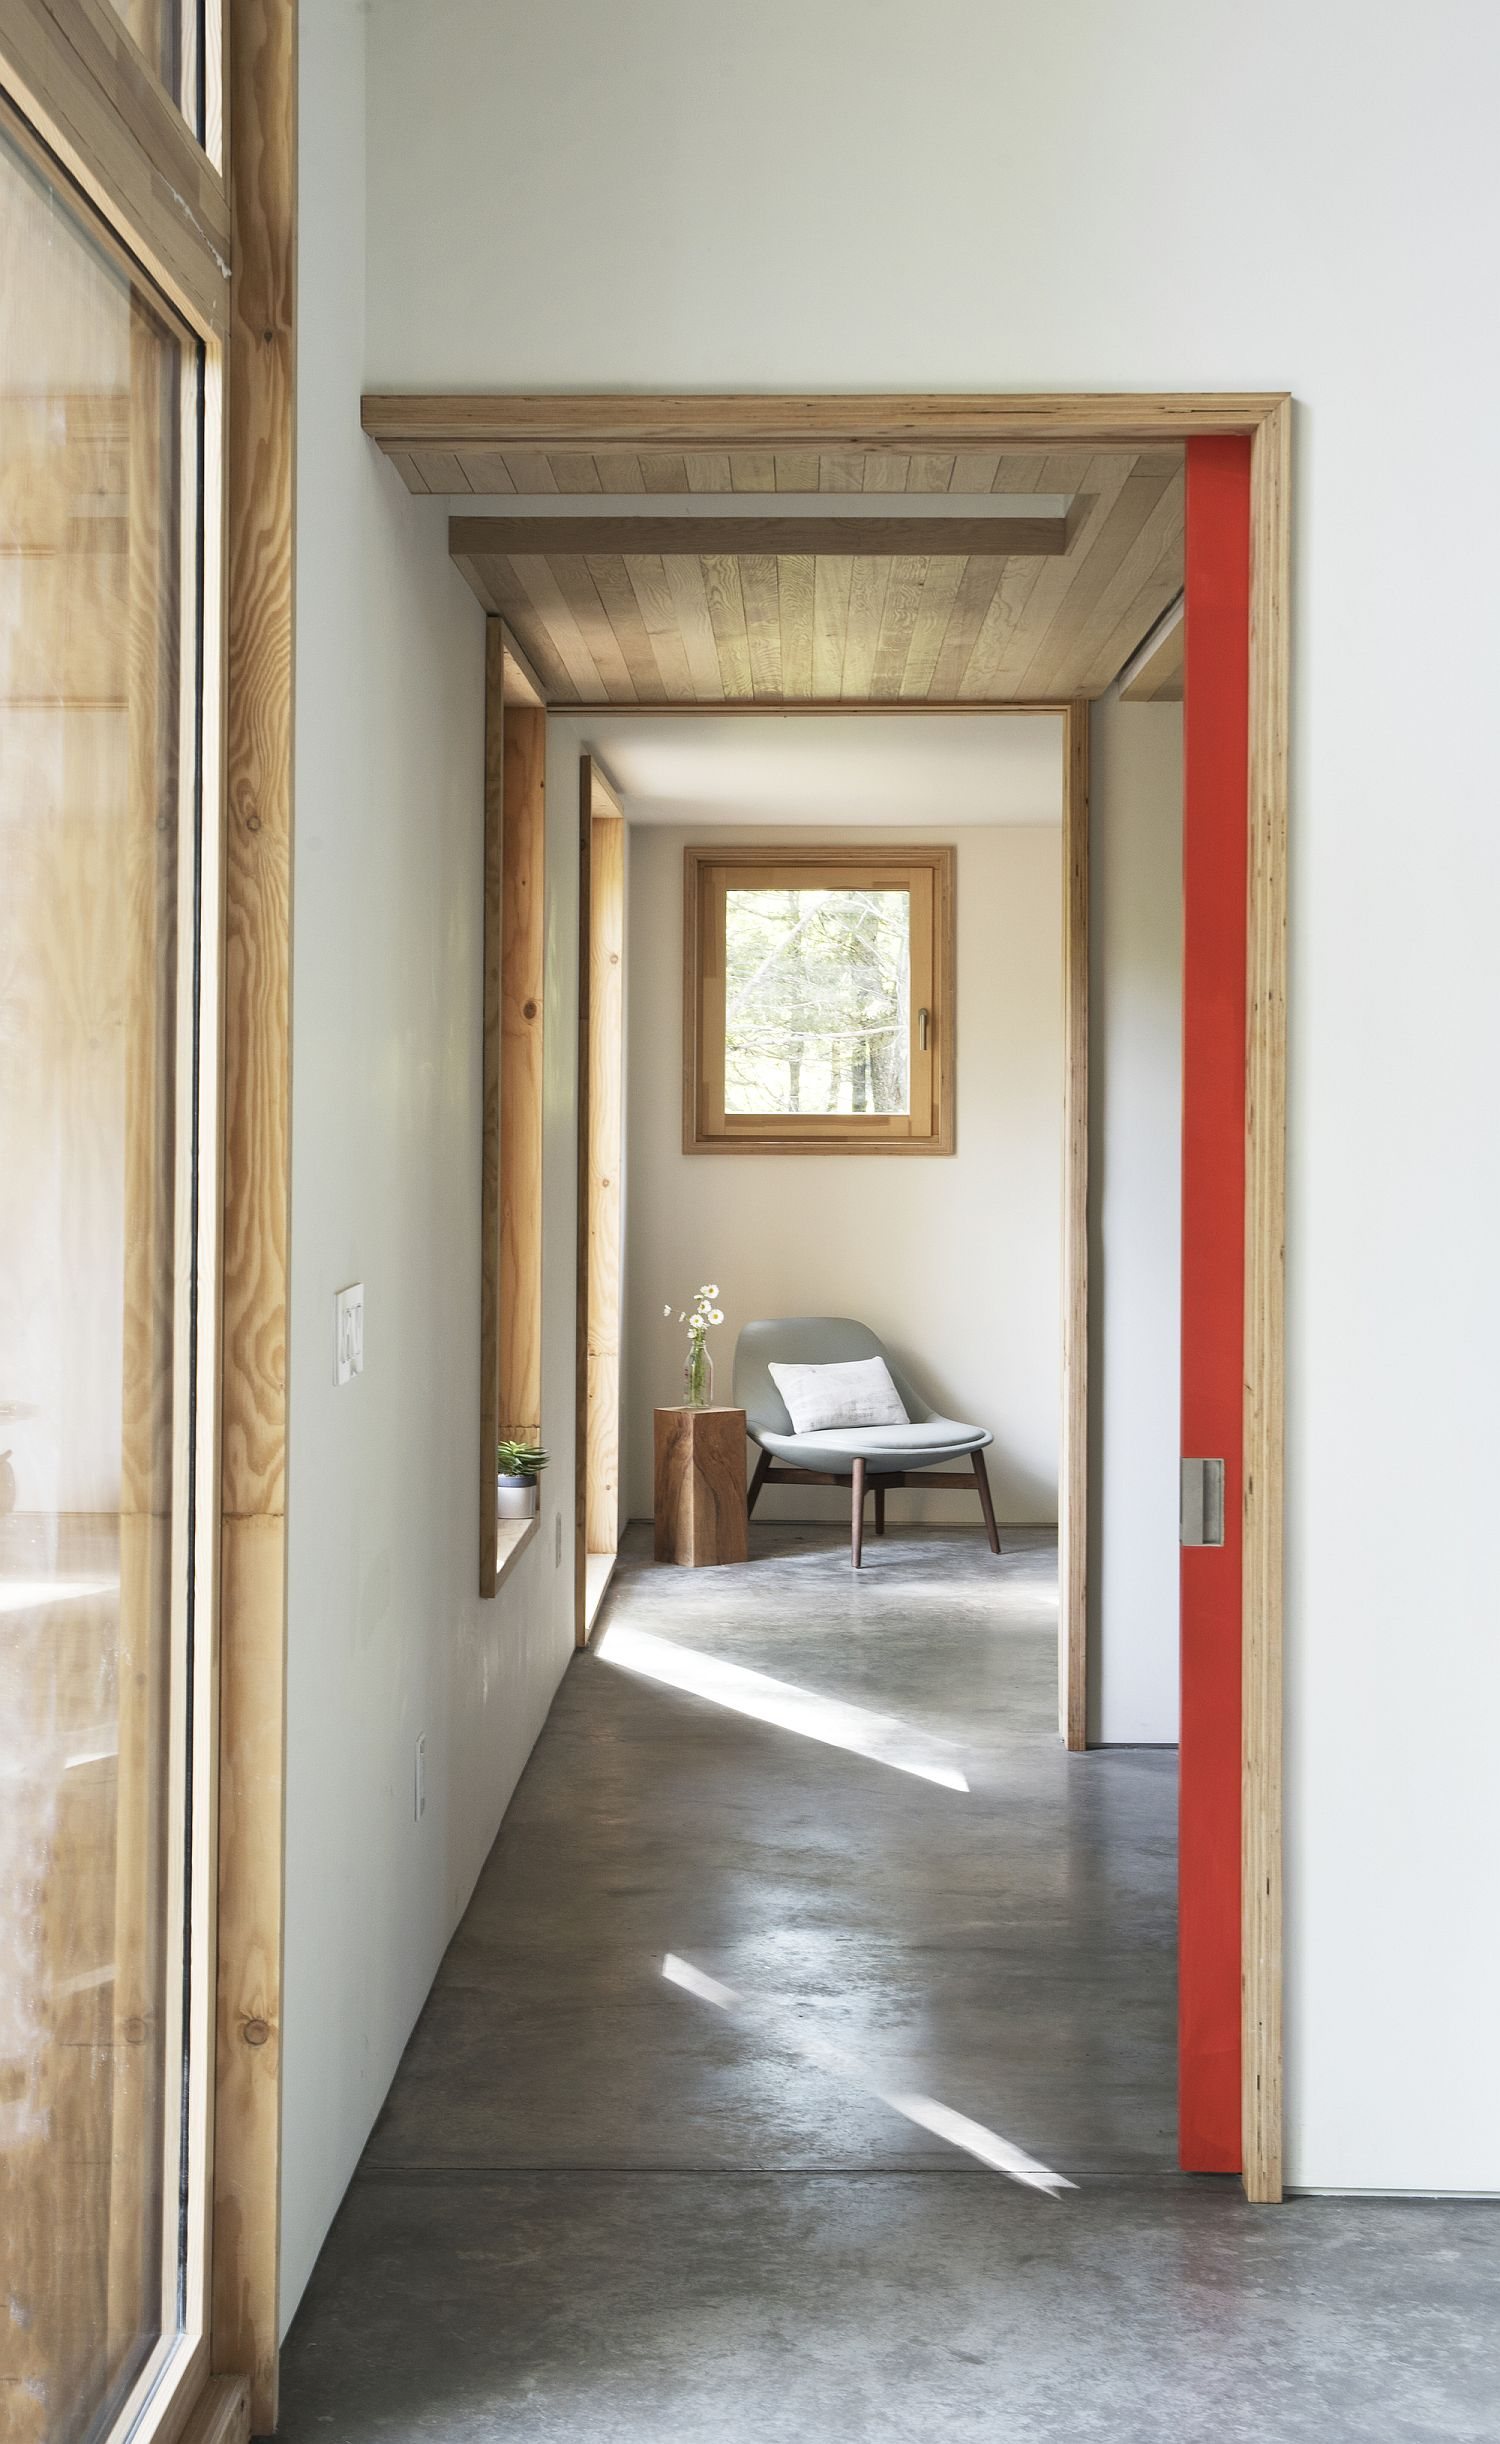 Smart design inside the home maximizes passive heating and cooling techniques